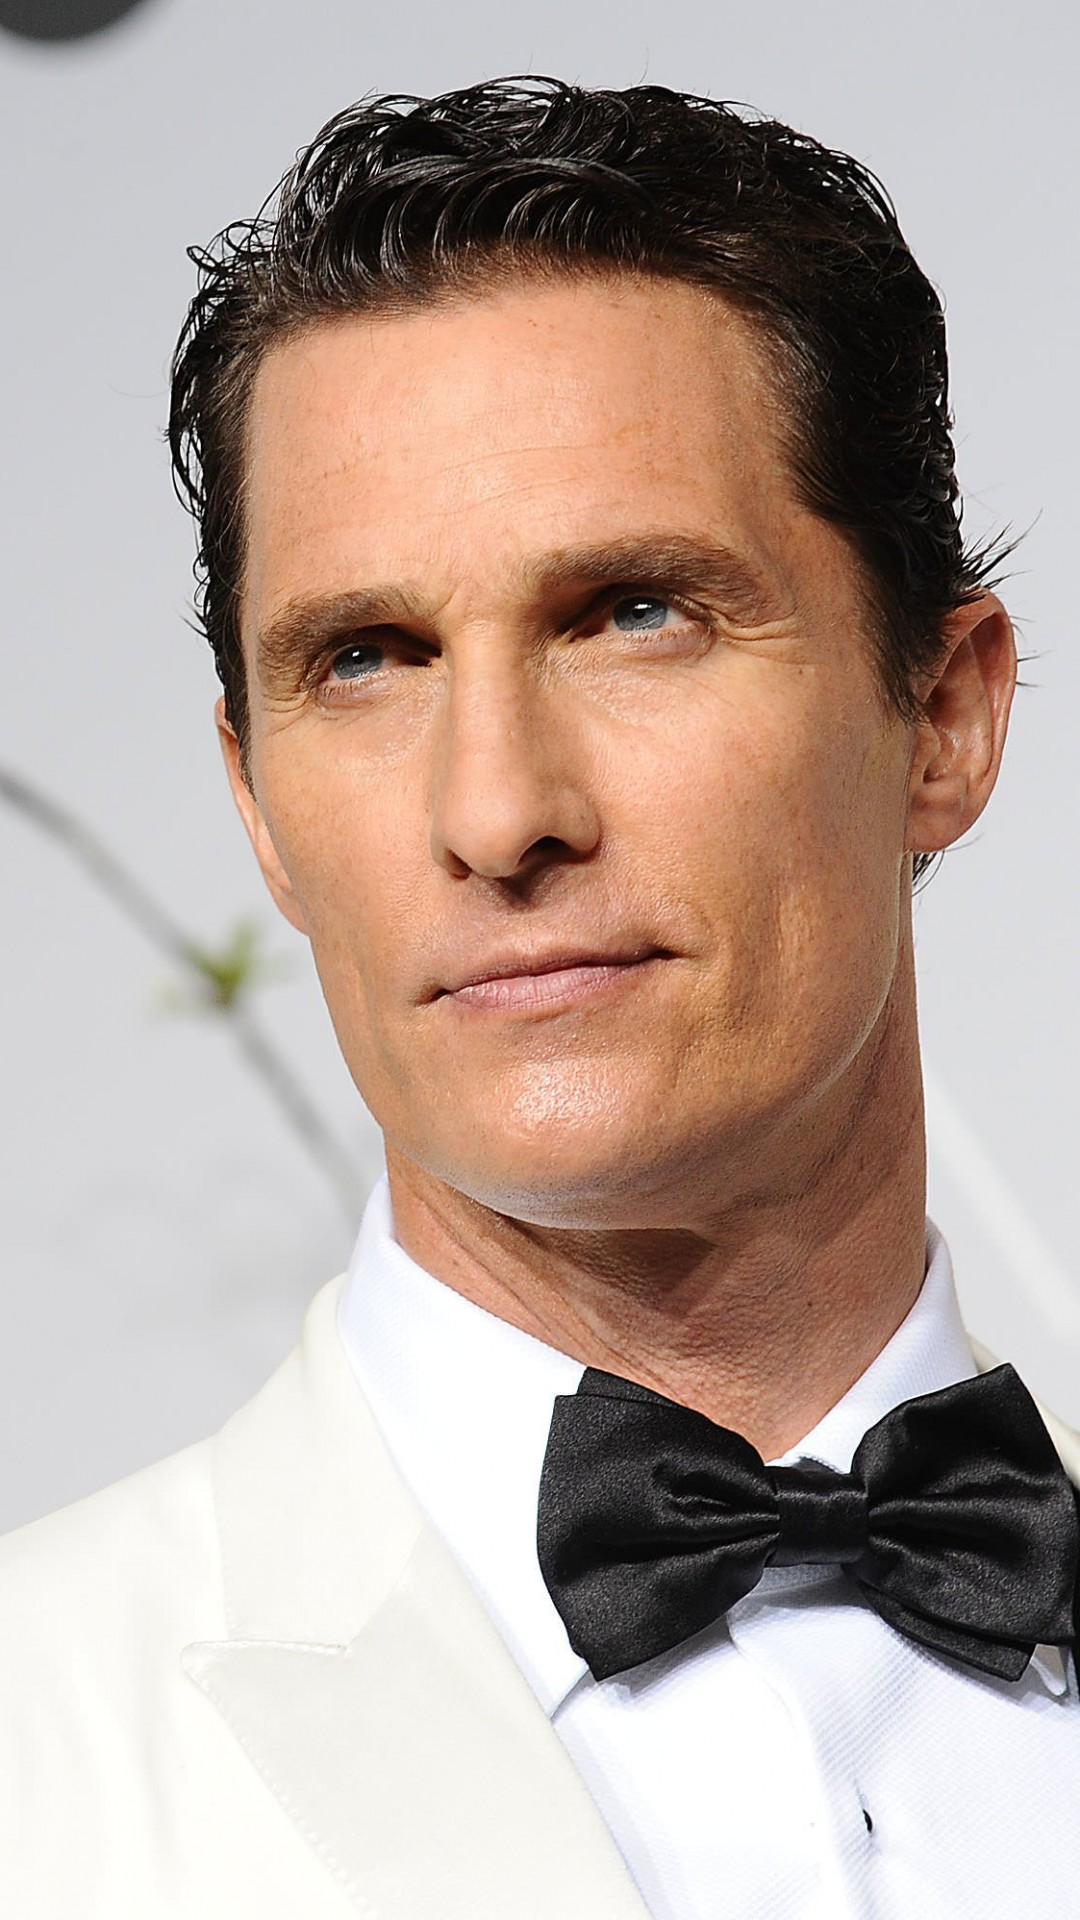 Matthew Mcconaughey in White Tuxedo Wallpaper for SONY Xperia Z2